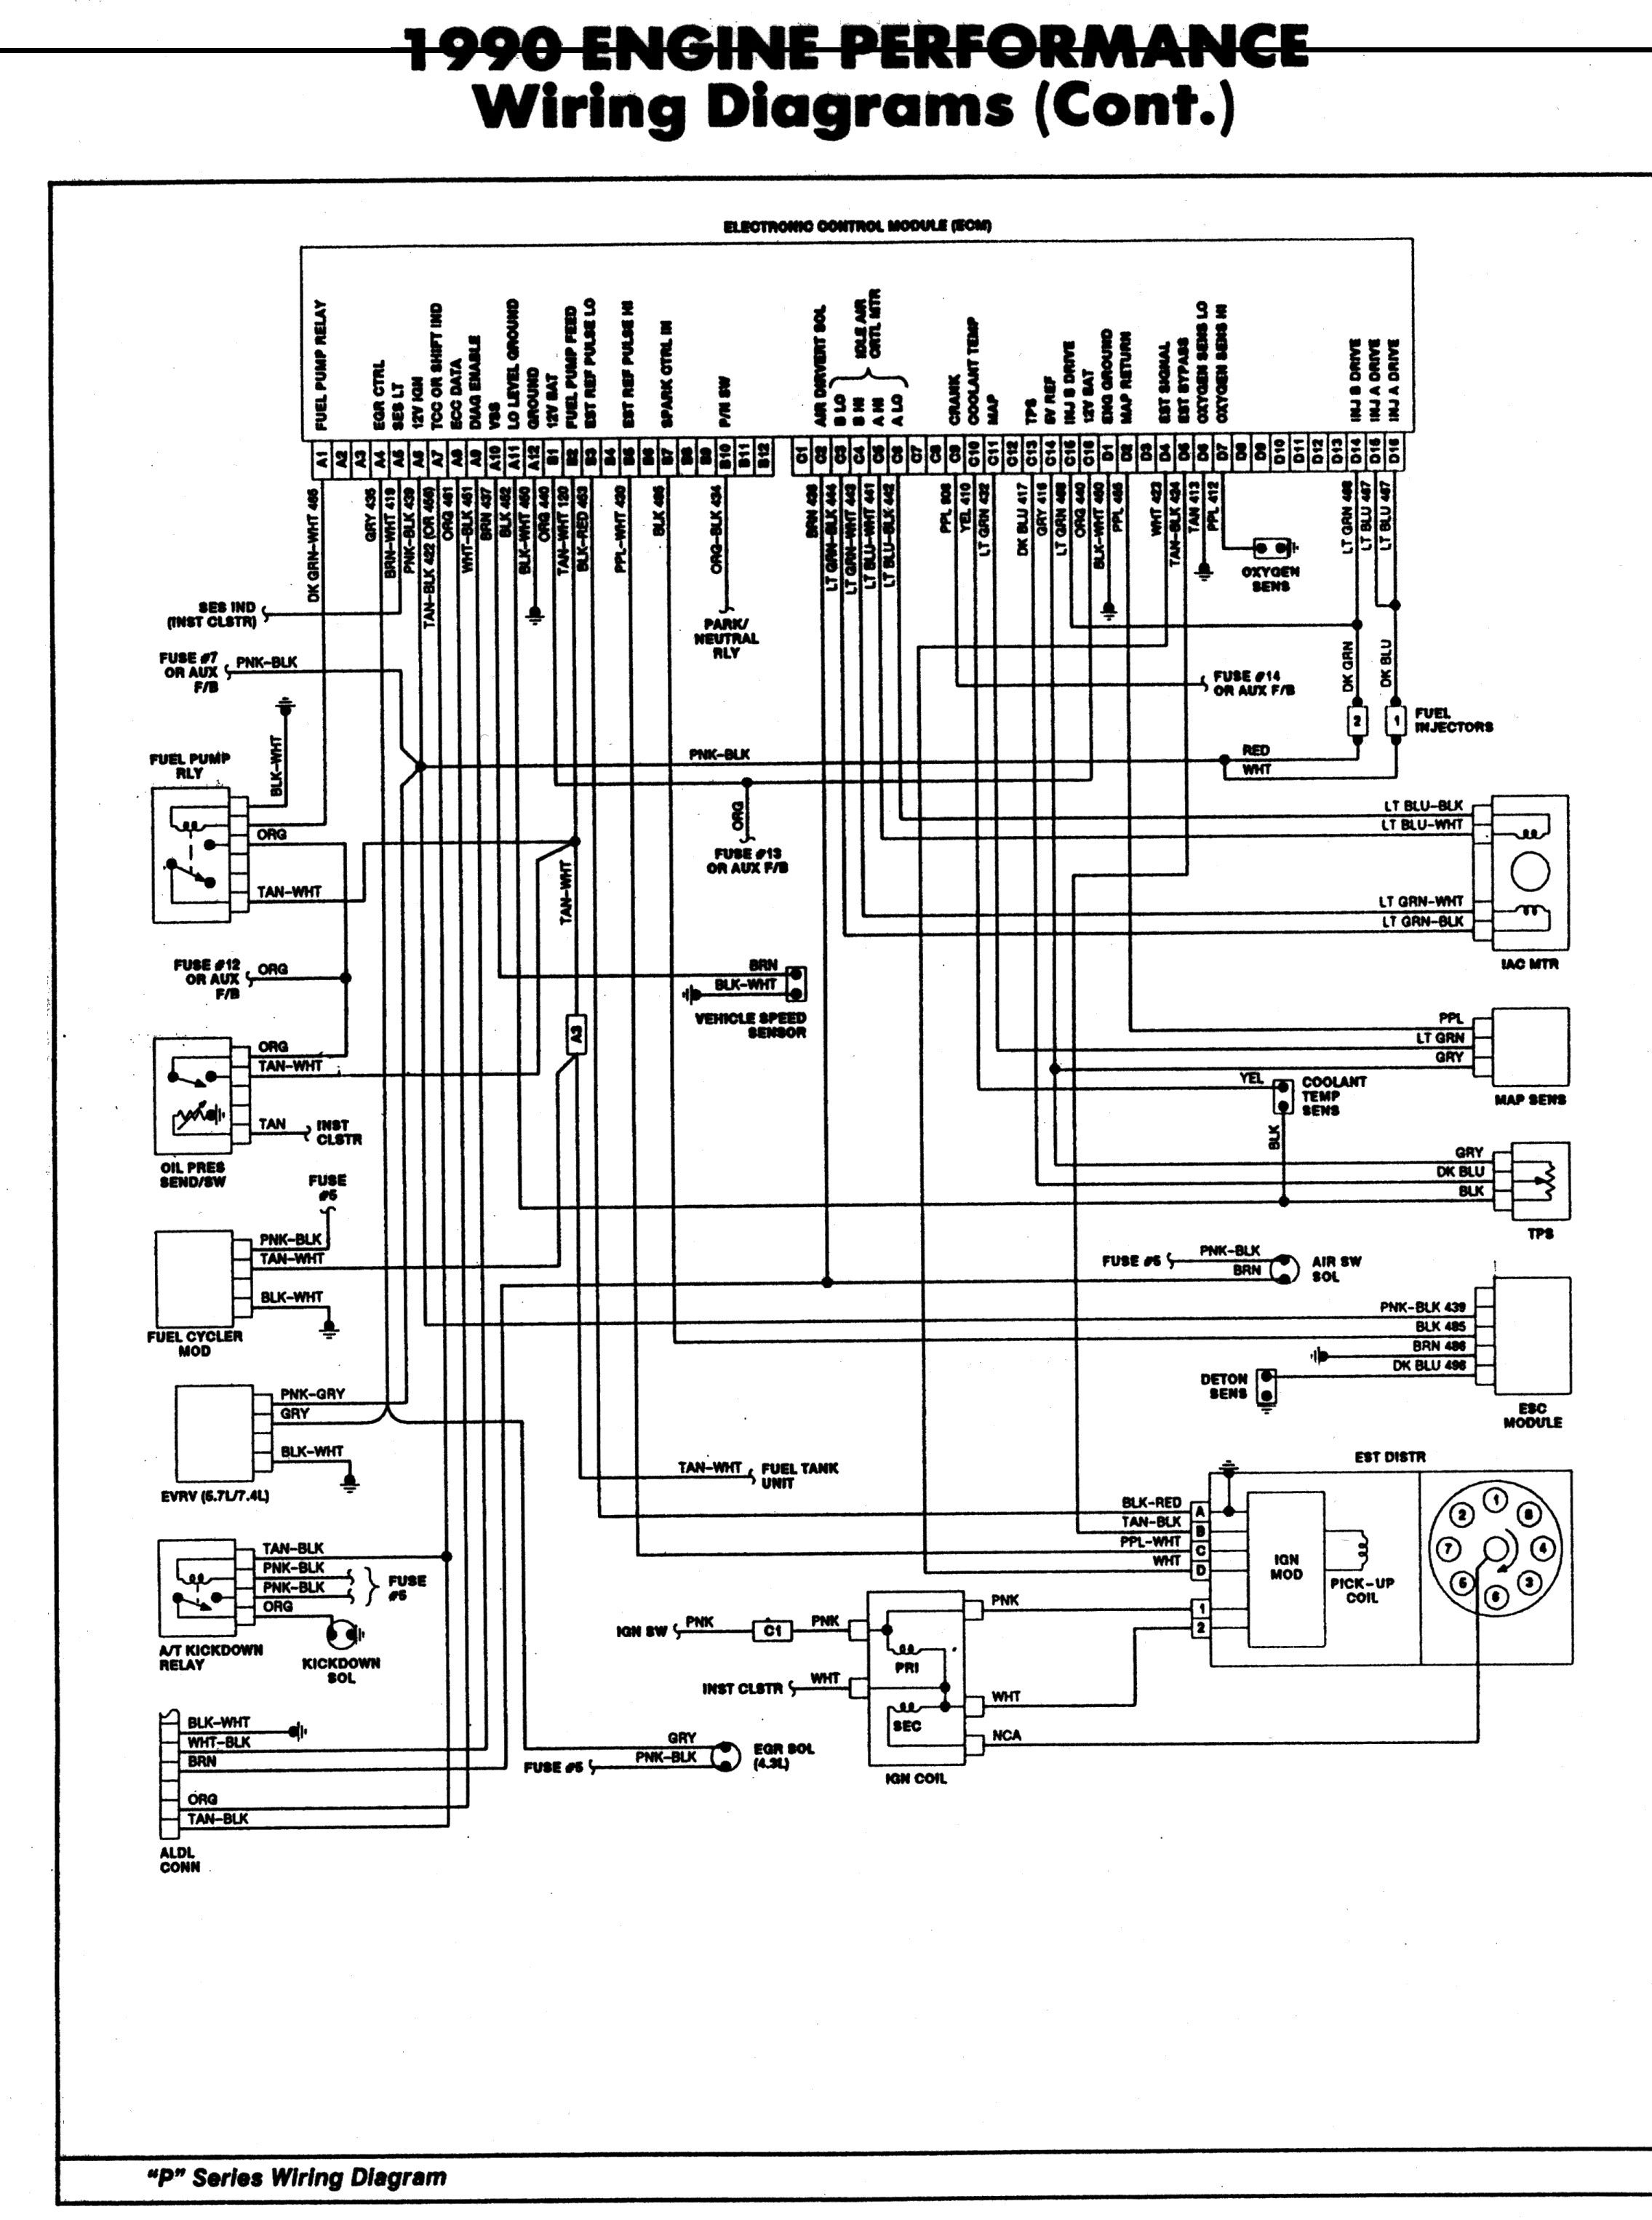 1998 chevy s10 2 2 engine diagram in 2021 | chevy trucks, chevy pickups,  chevy  pinterest